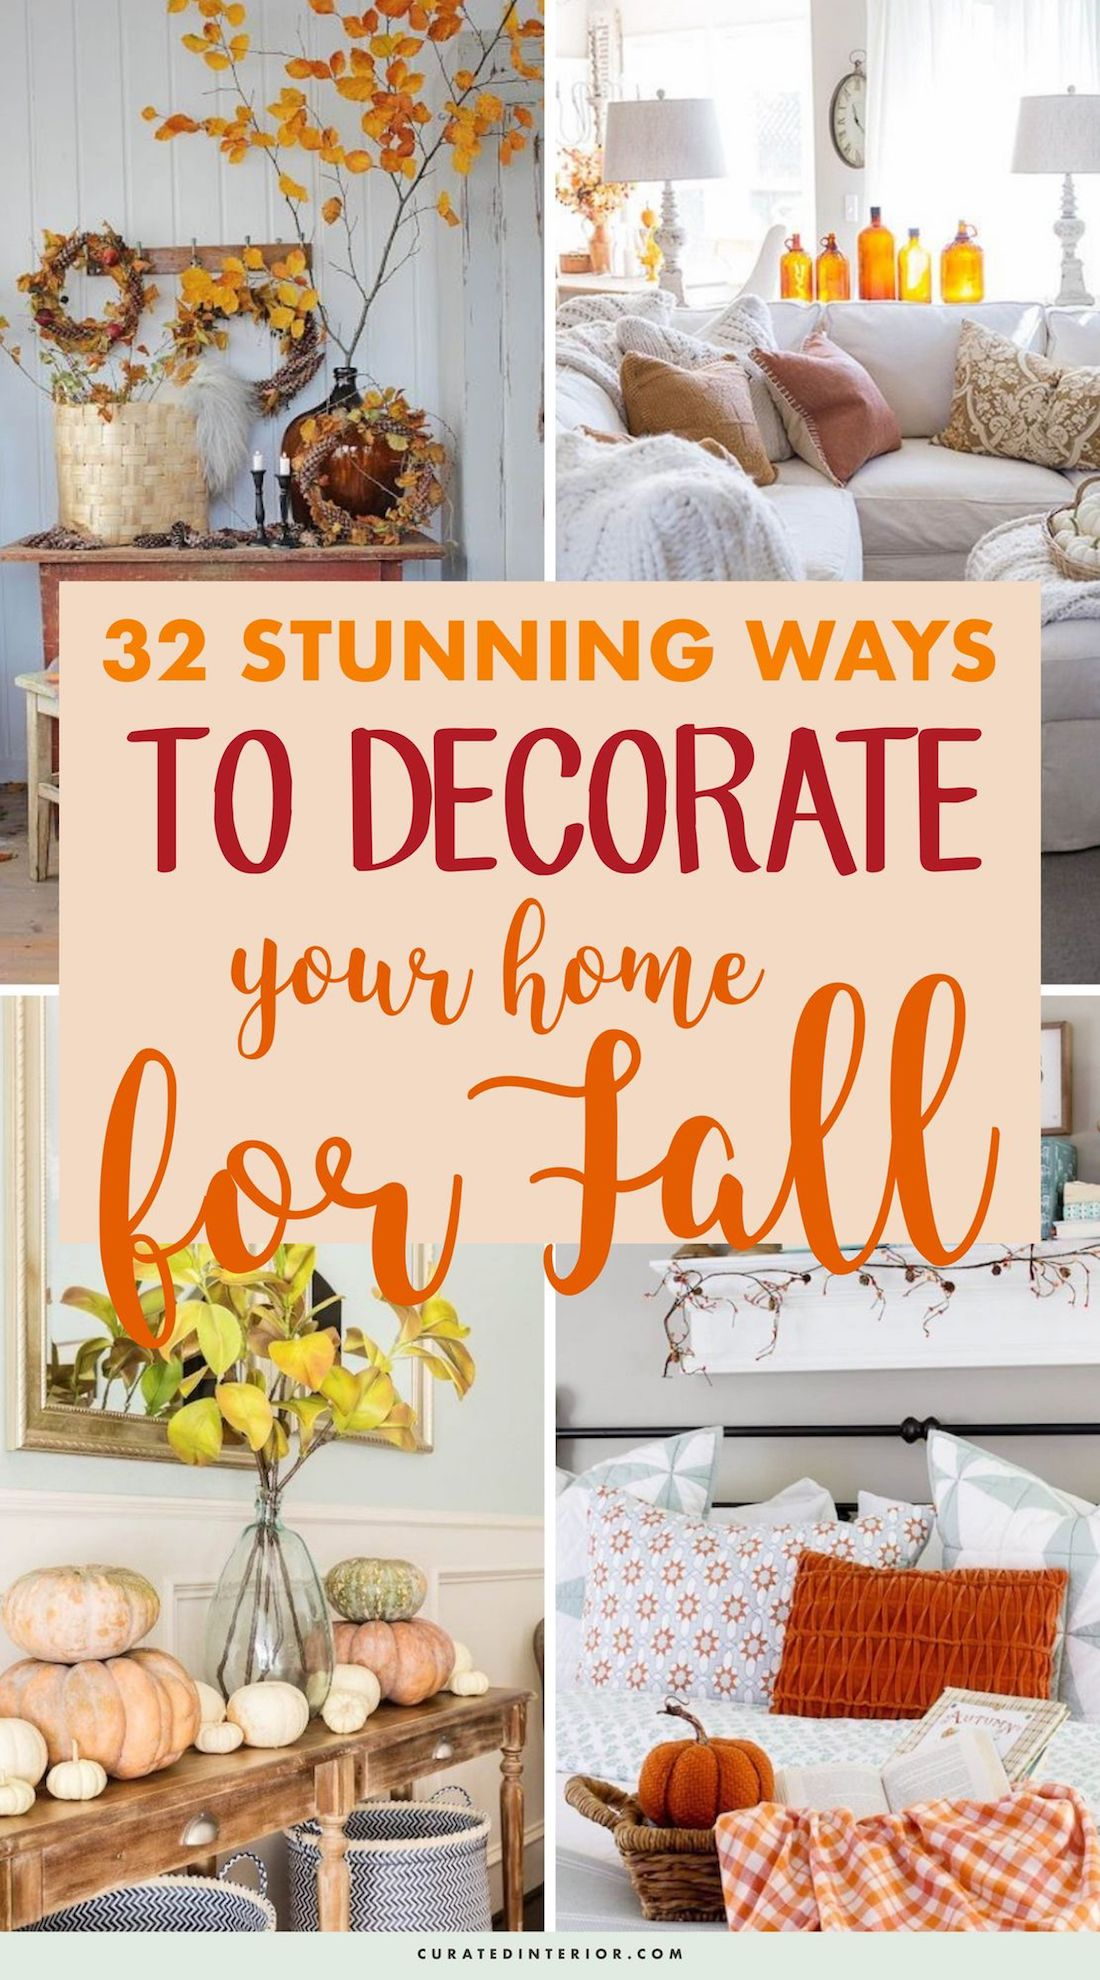 32 Stunning Ways To Decorate Your Home For Fall #FallDecor #FallHomeDecor #FallDecorIdeas #FallHome